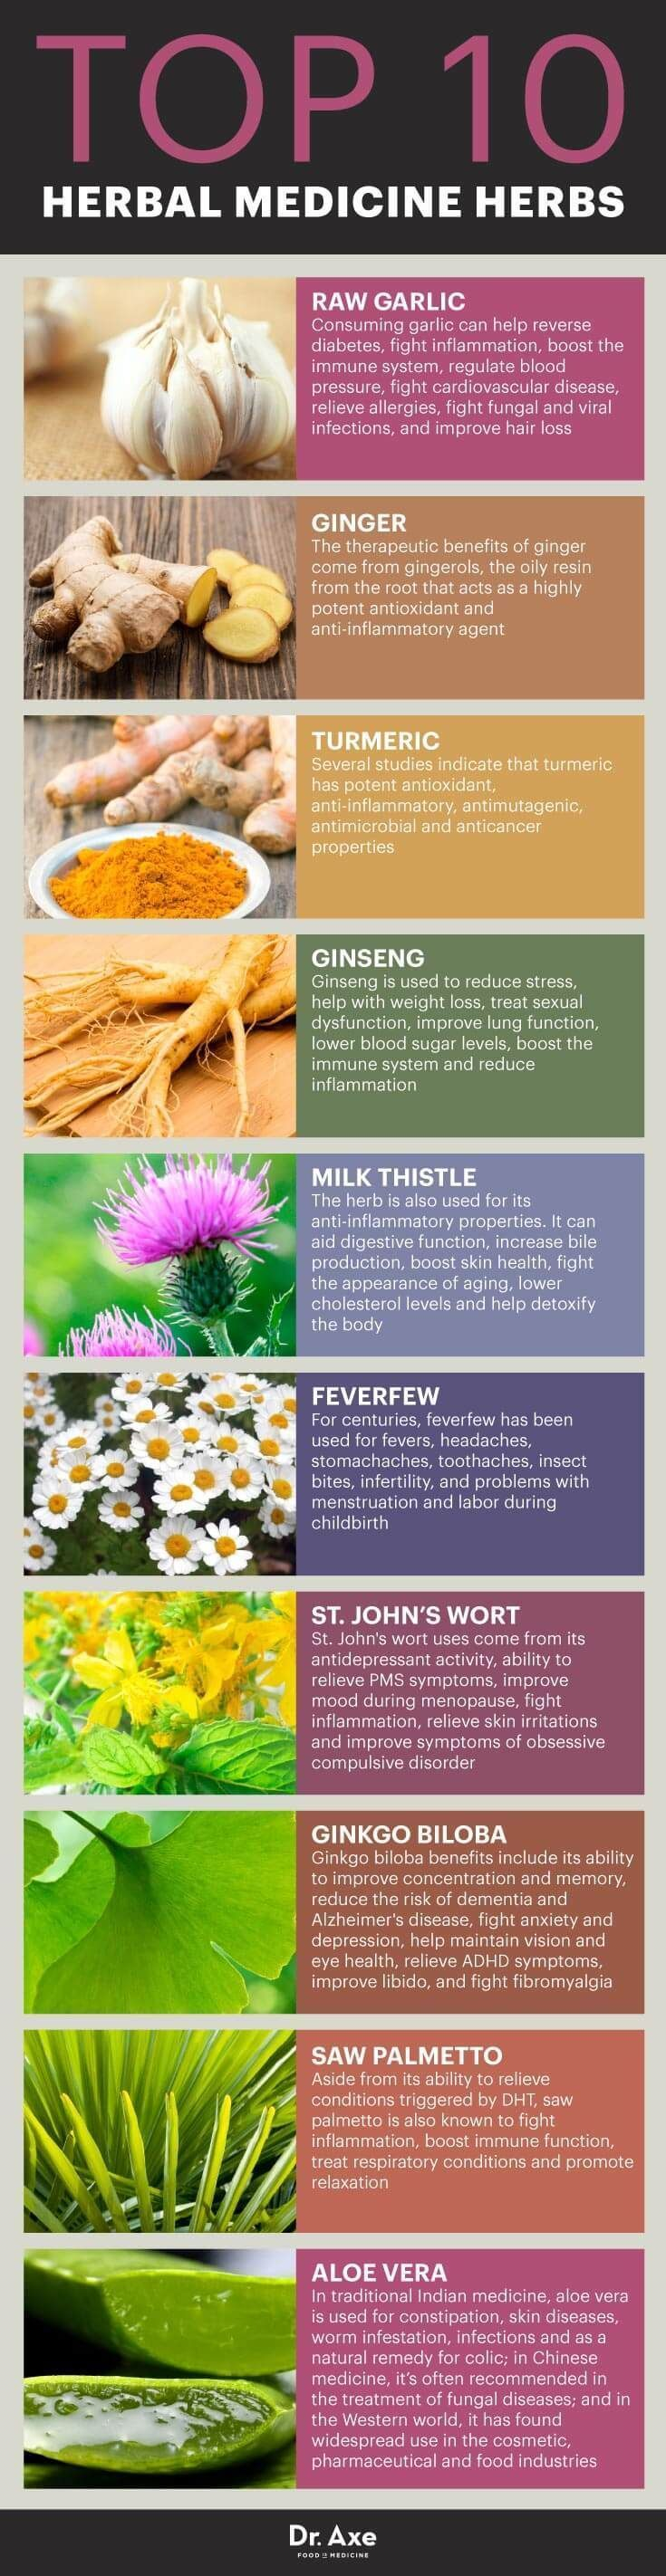 Top 10 Herbal Medicine Herbs Herbal Medicine & the Top 10 Herbal Medicine Herbs - Dr. AxeHerbal Medicine & the Top 10 Herbal Medicine Herbs - Dr. Axe